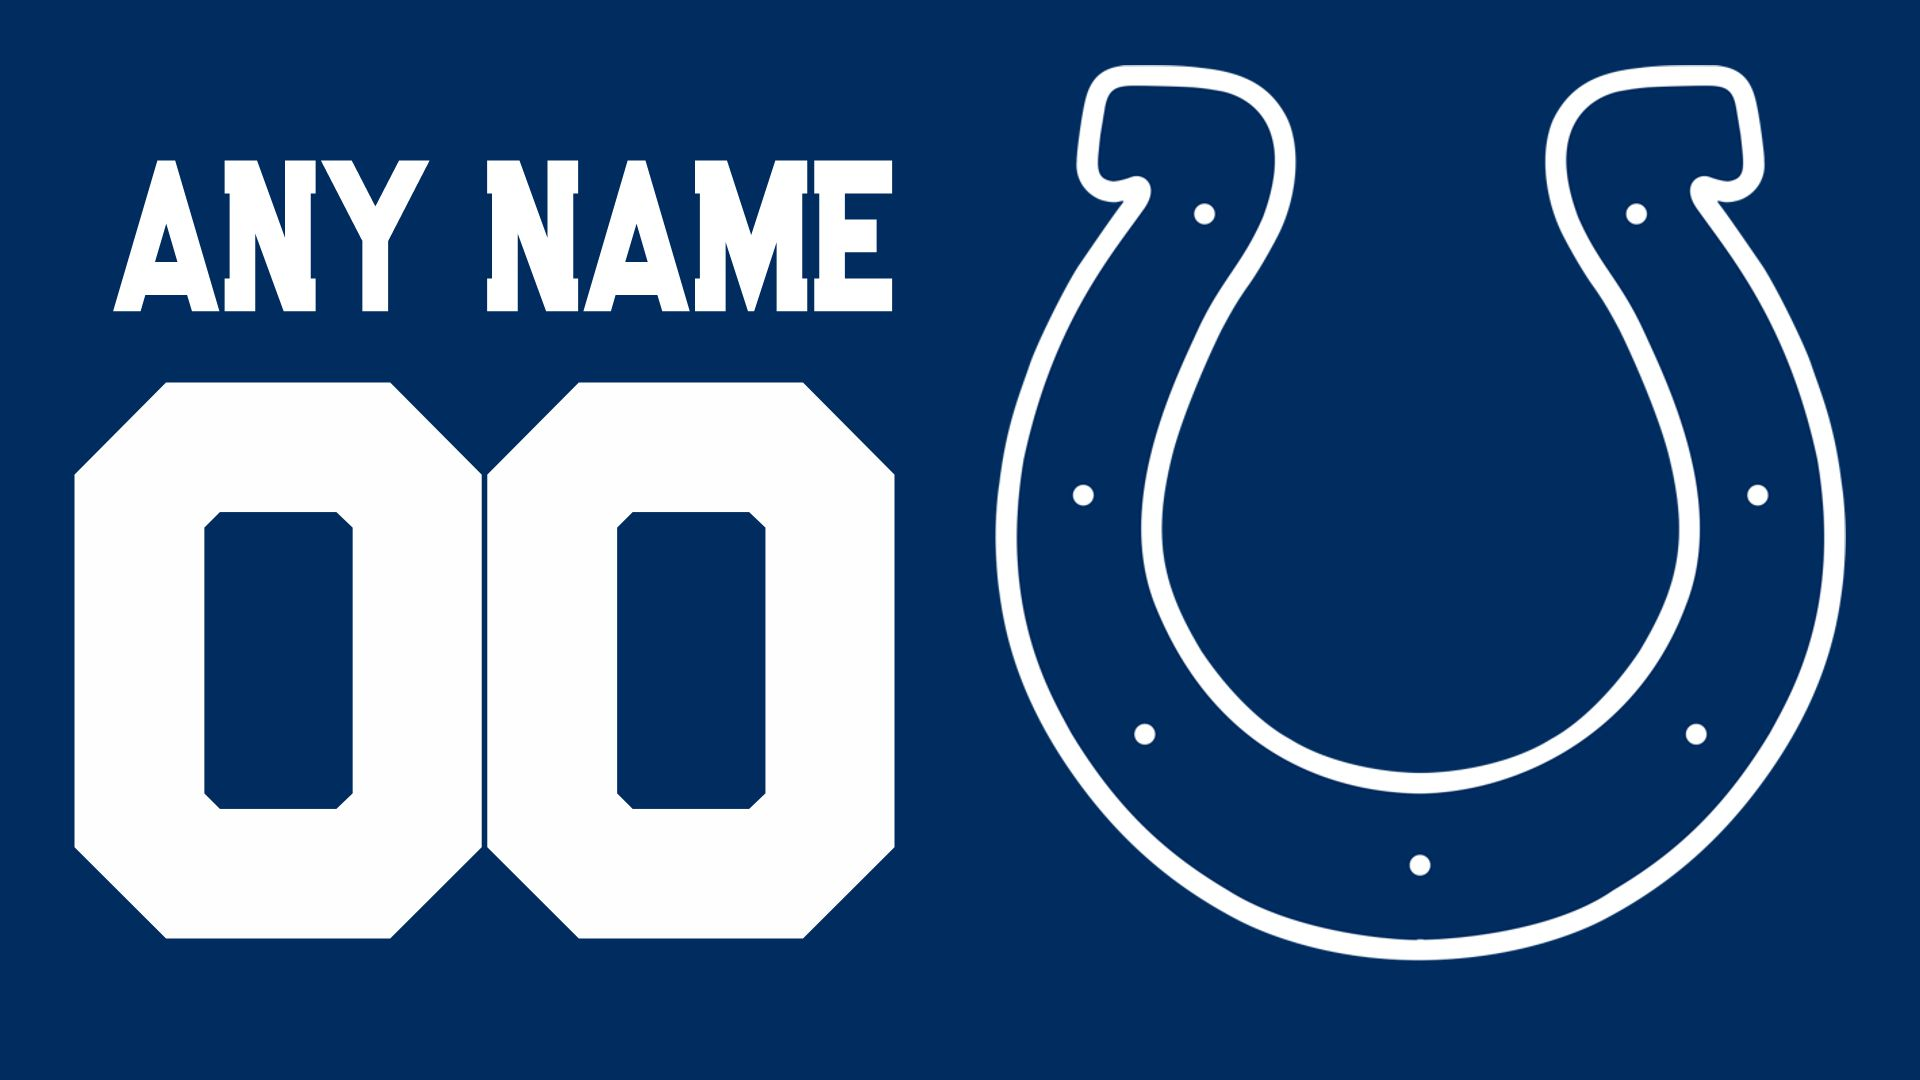 colts any Name Jersey Texture